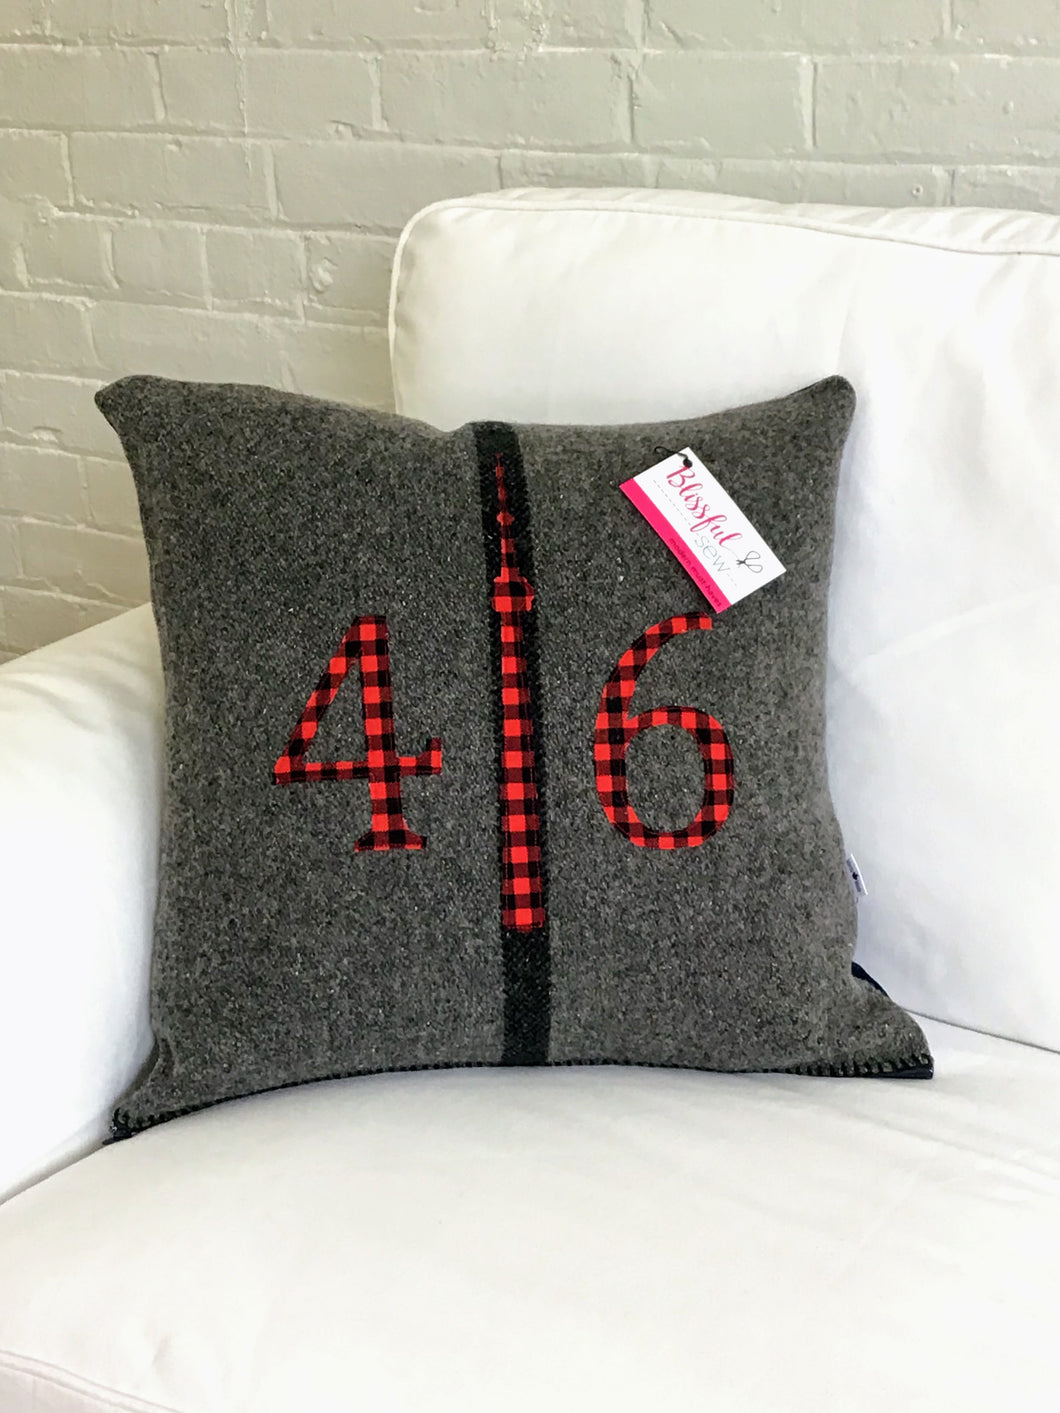 Felted Wool Blanket Pillow - Dark grey background with thick black vertical stripe.  Red plaid numbers and CN Tower.